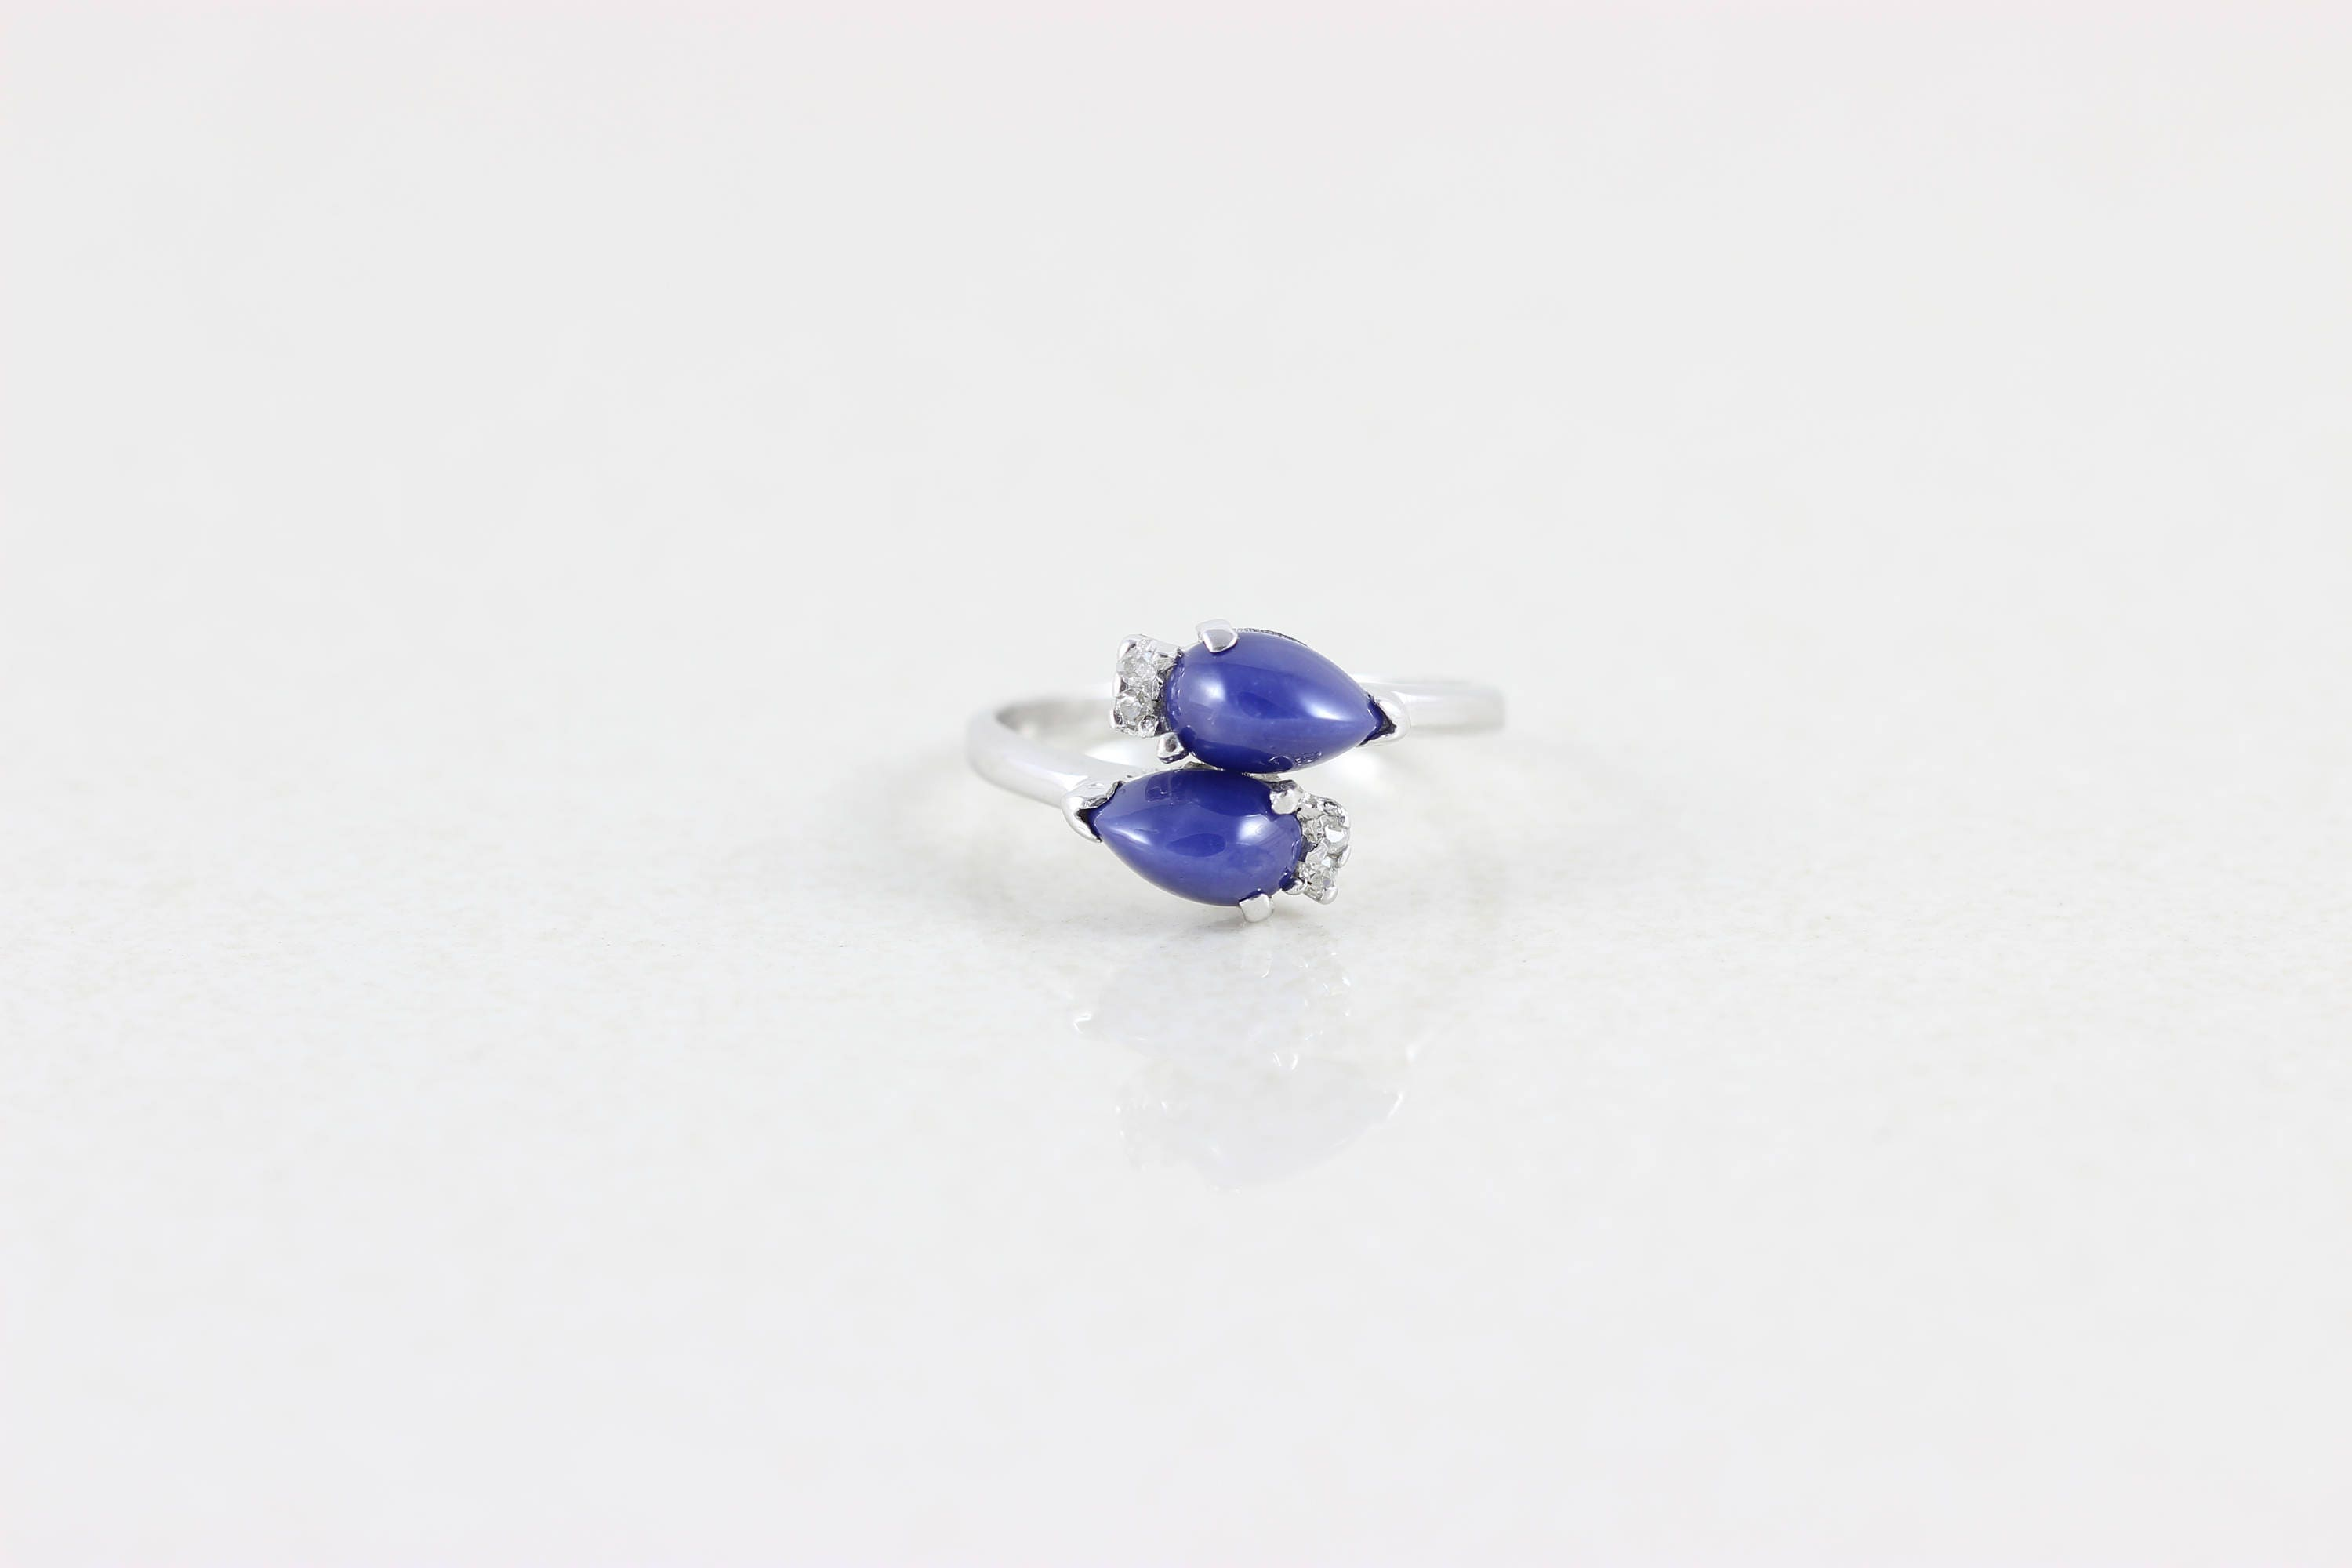 sapphire blue star etsy gold white ring vintage cut round pin